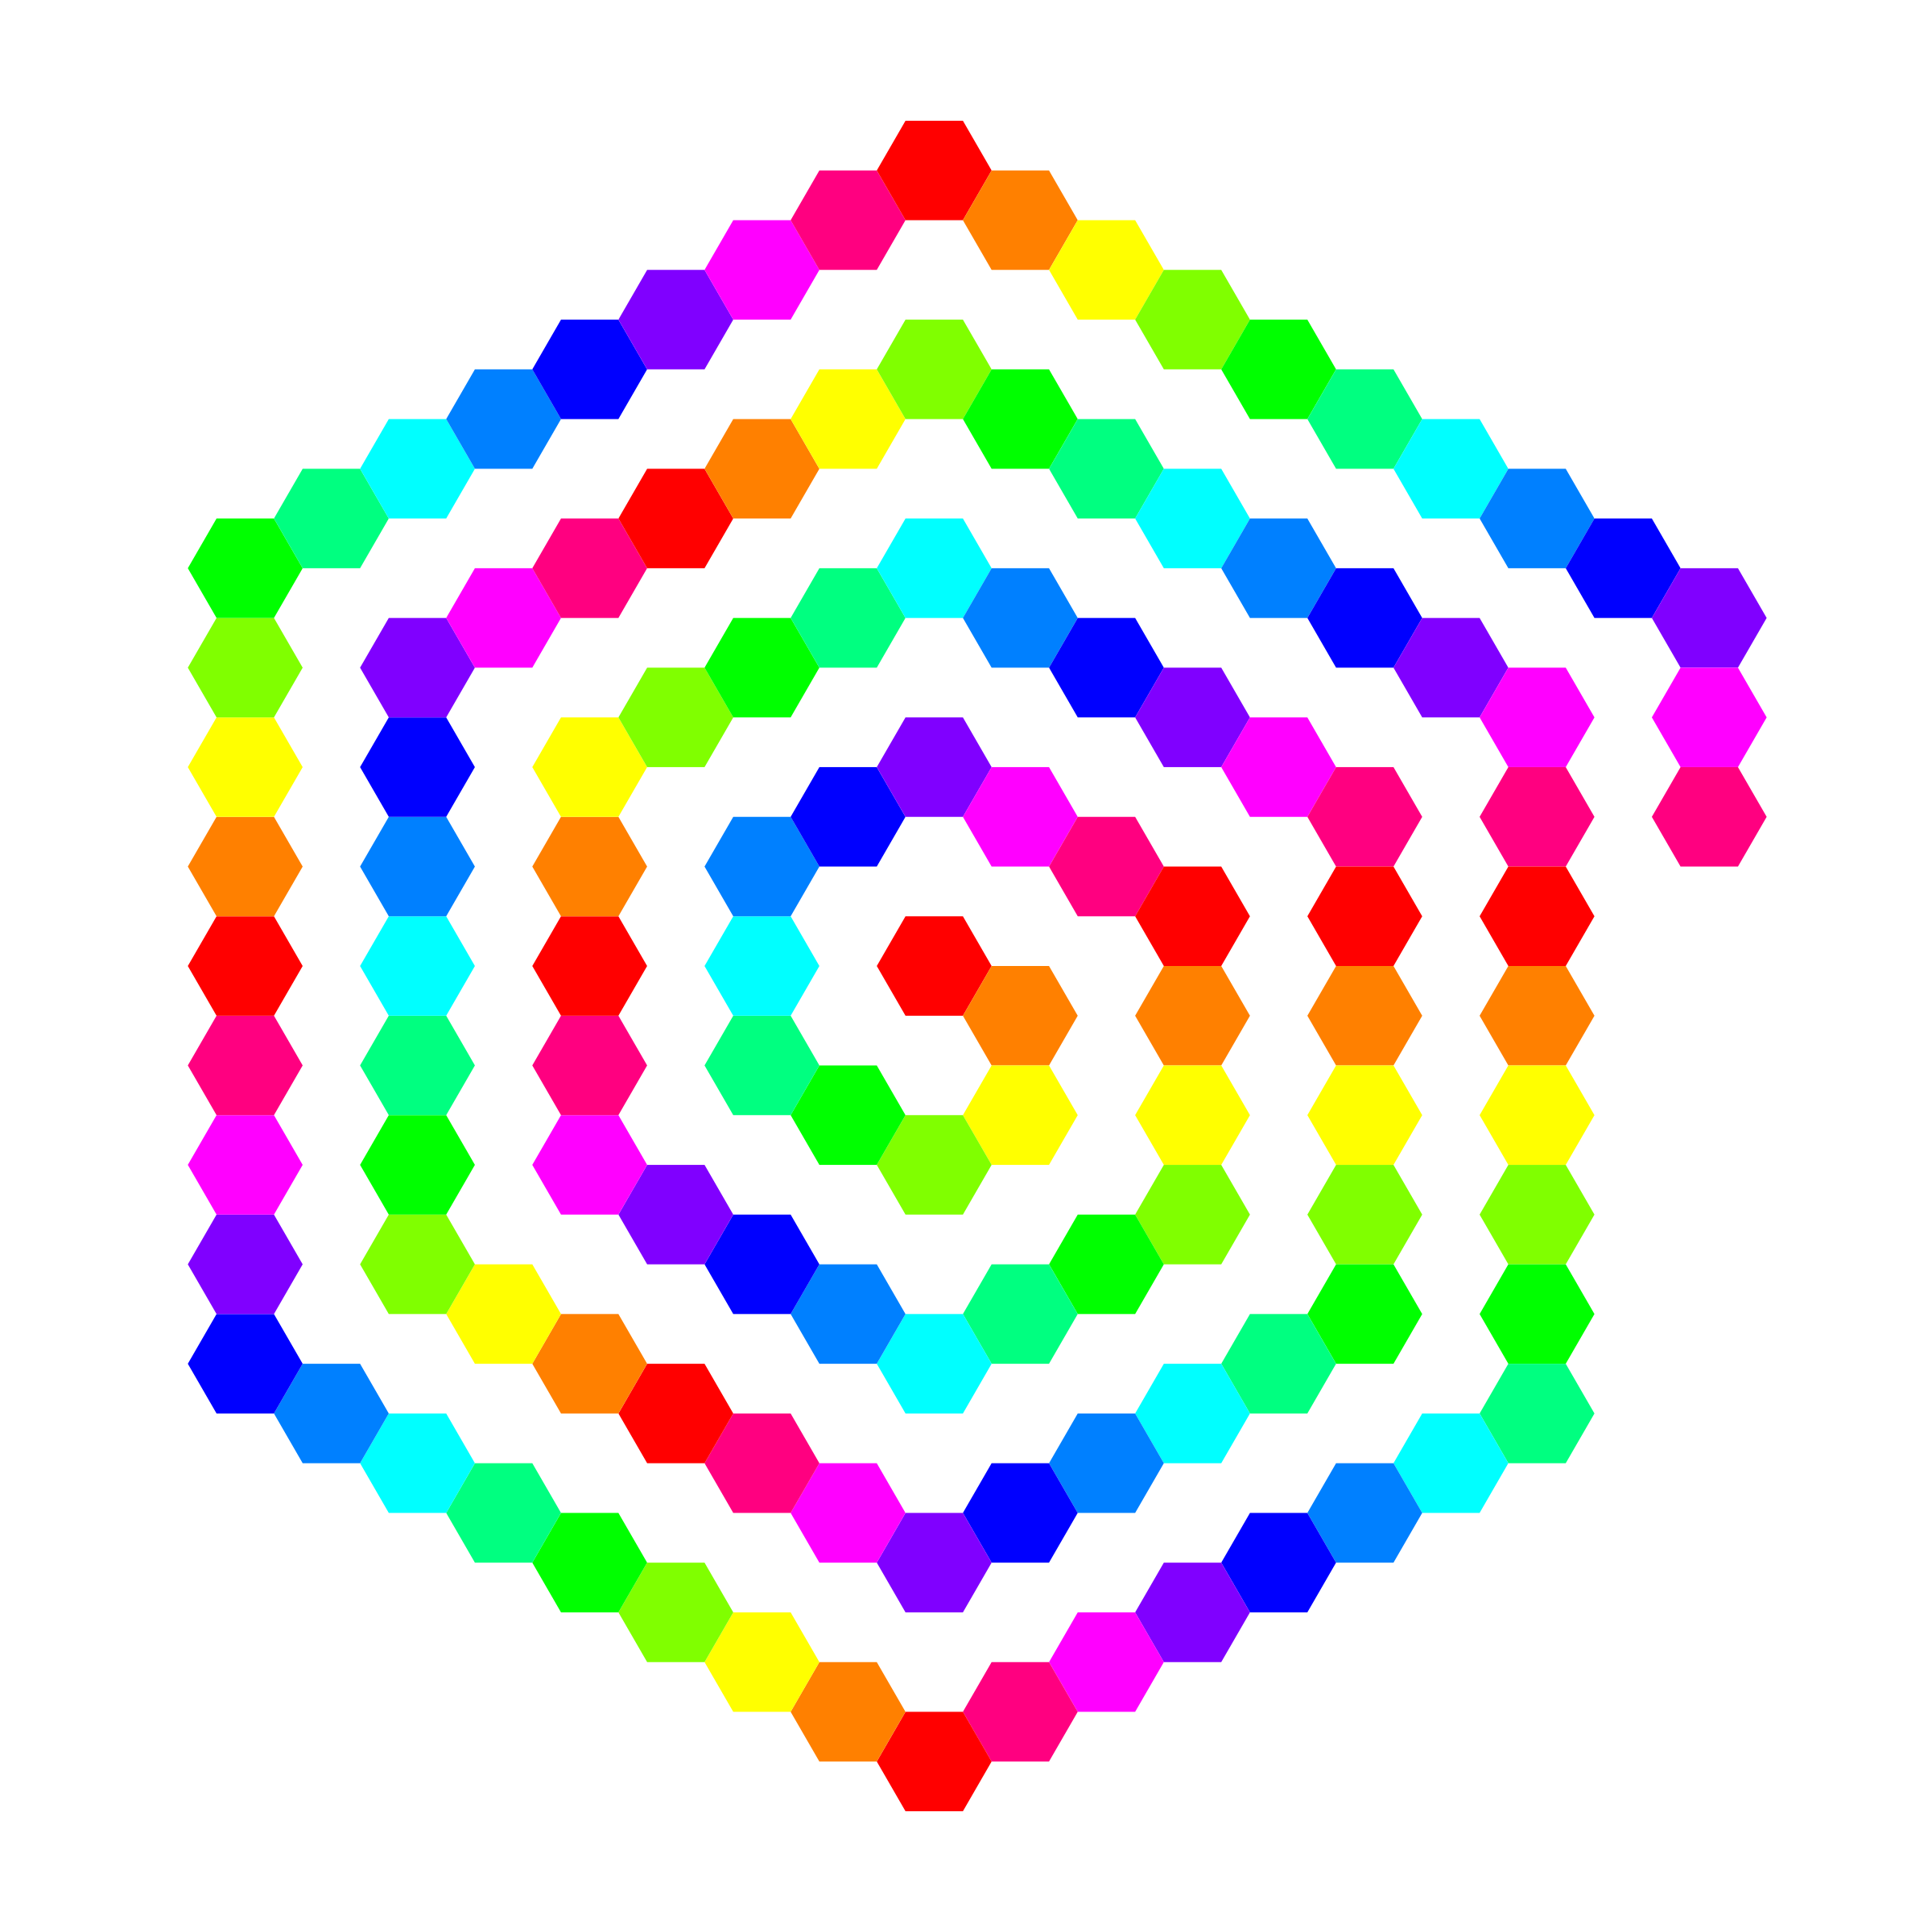 120 hexagon spiral by 10binary